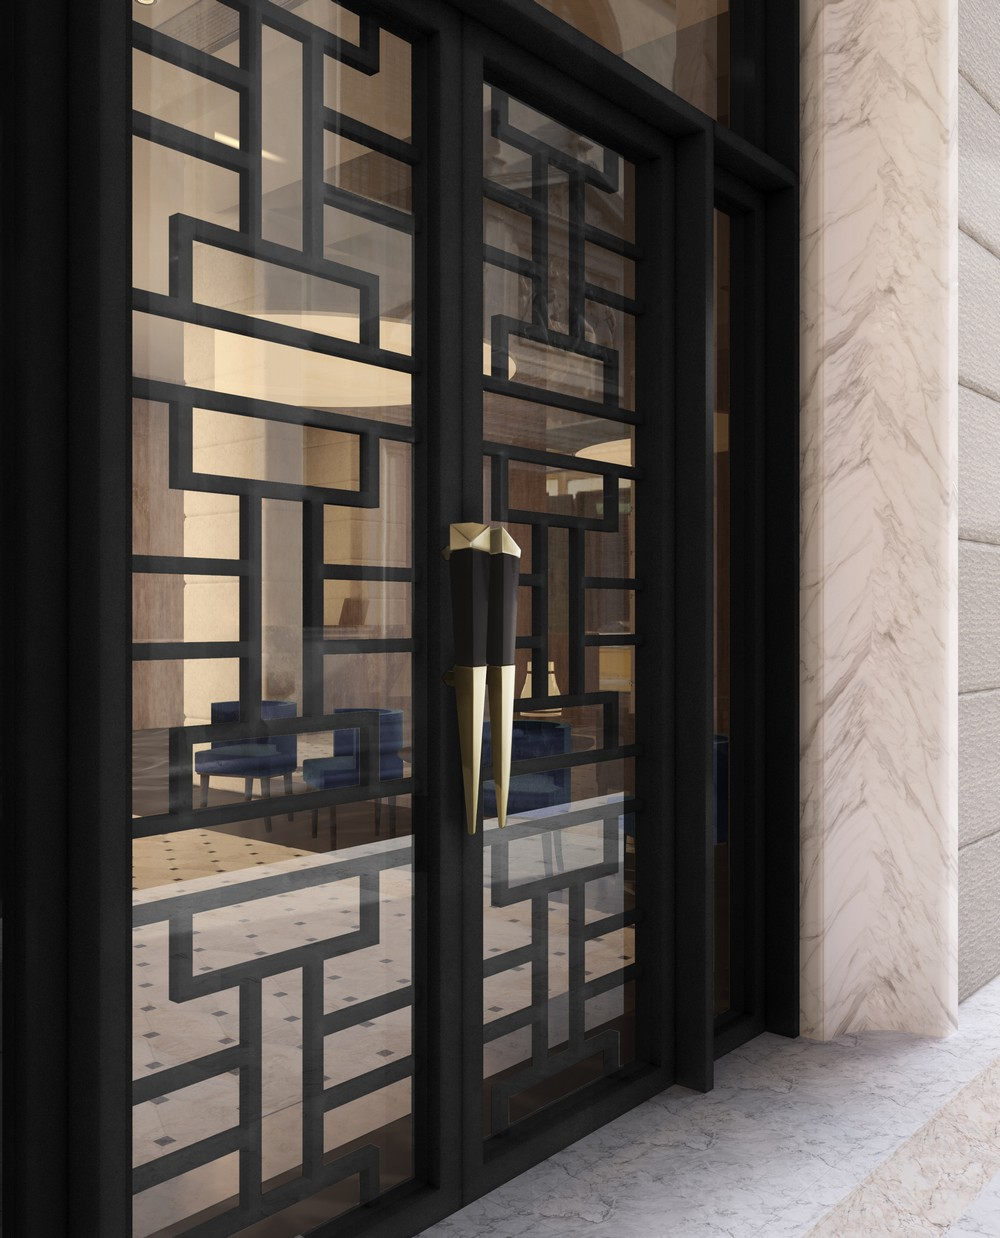 Hospitality Design The Best Door Pulls to Use in Fashionable Projects 4